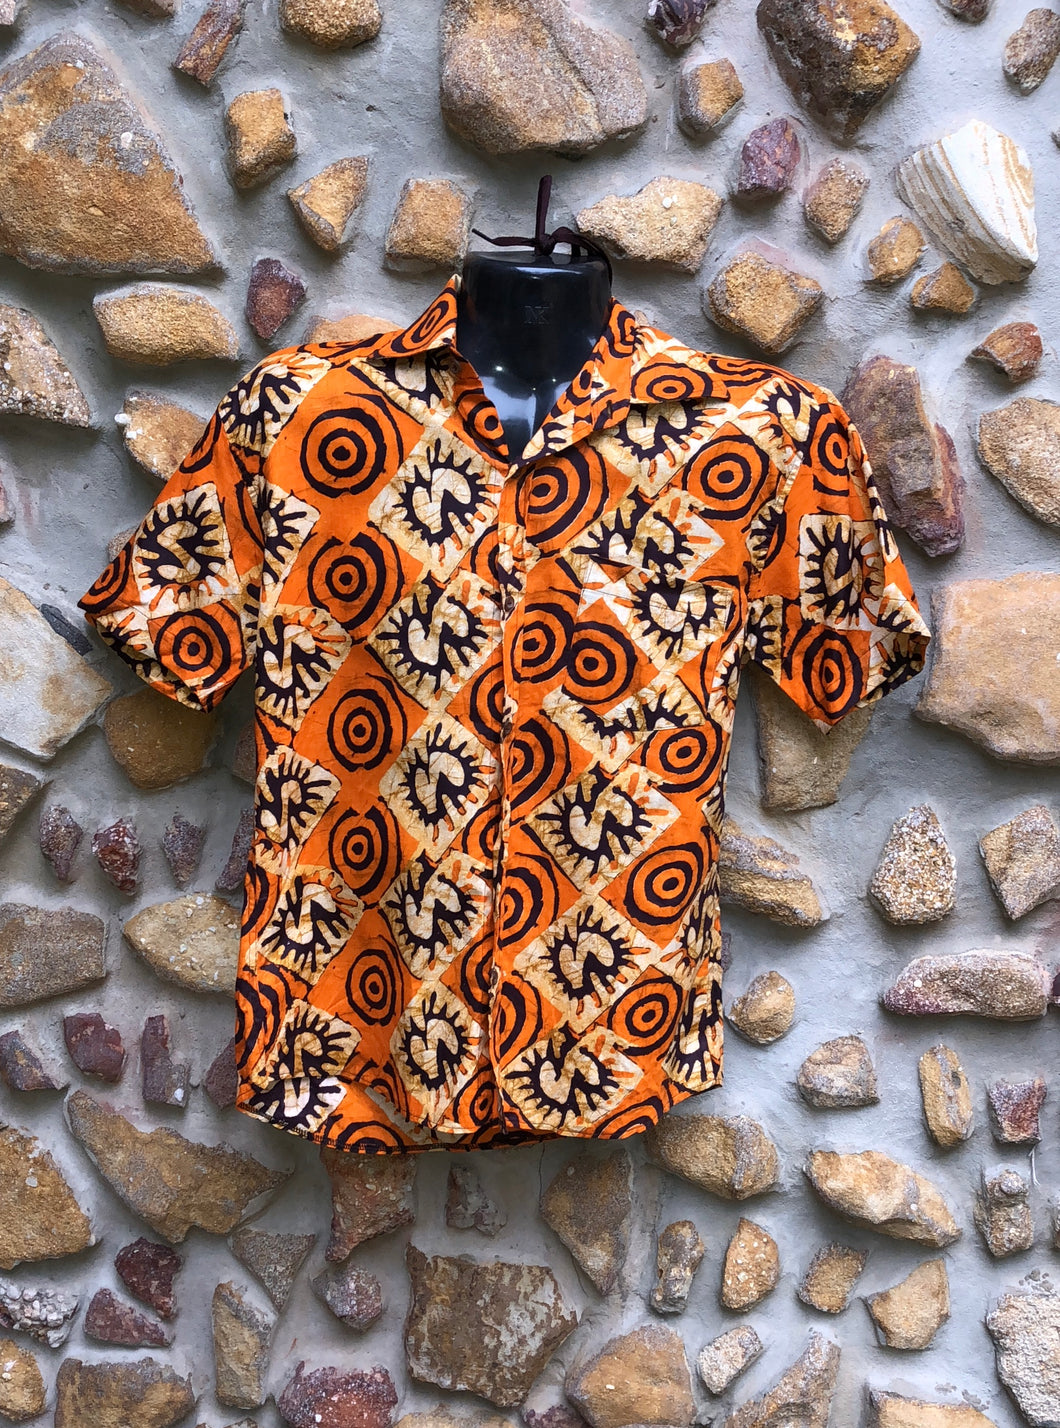 XXXL Love Shirt Cotton - Orange Swirls African Print